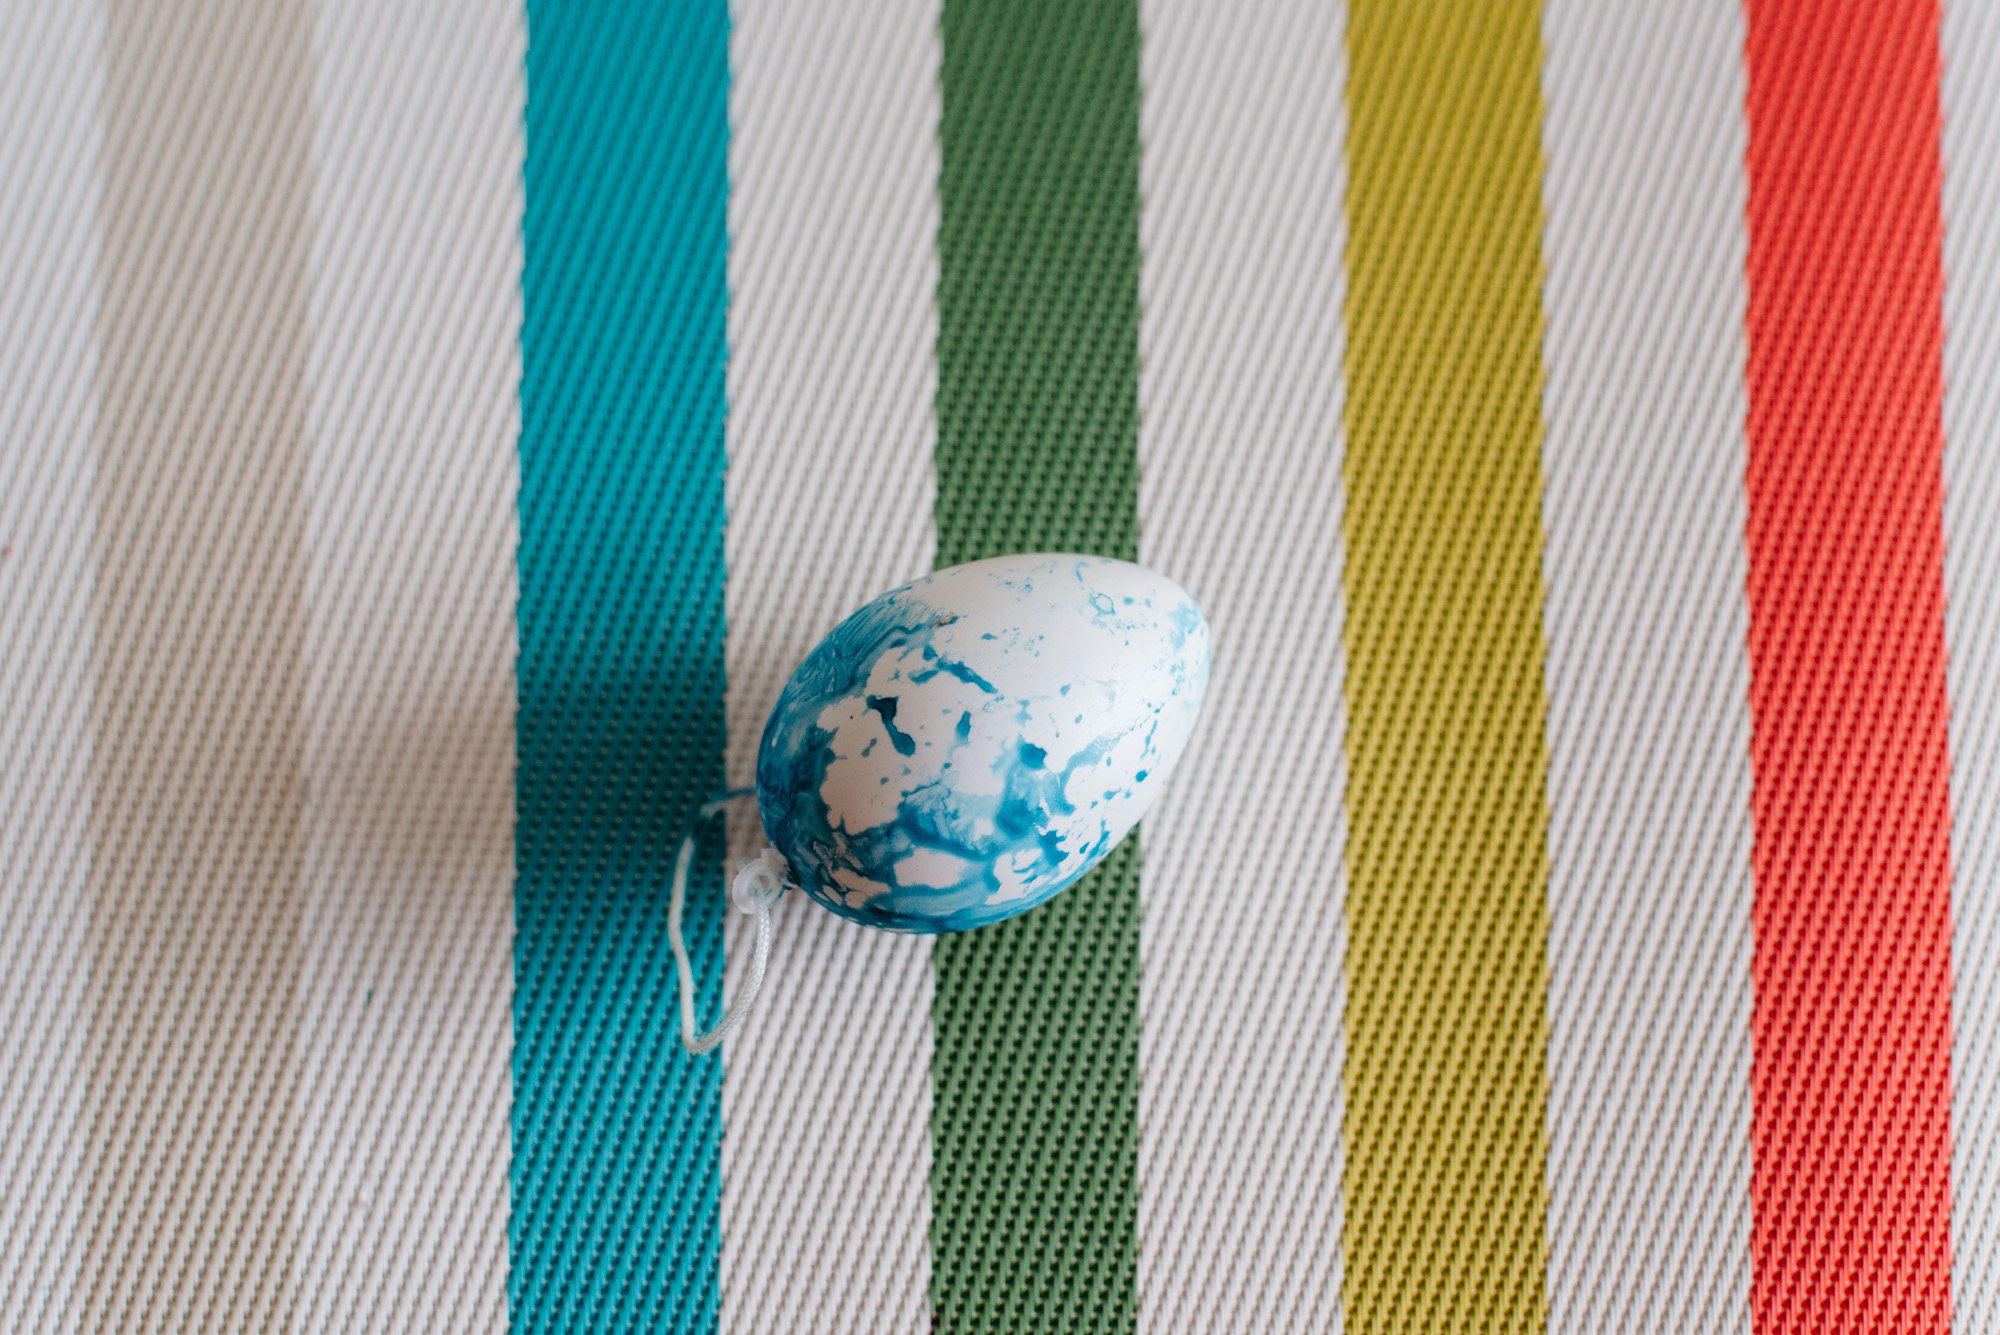 sara-wilde-collective-tie-dye-easter-eggs-food-colouring-16.jpg